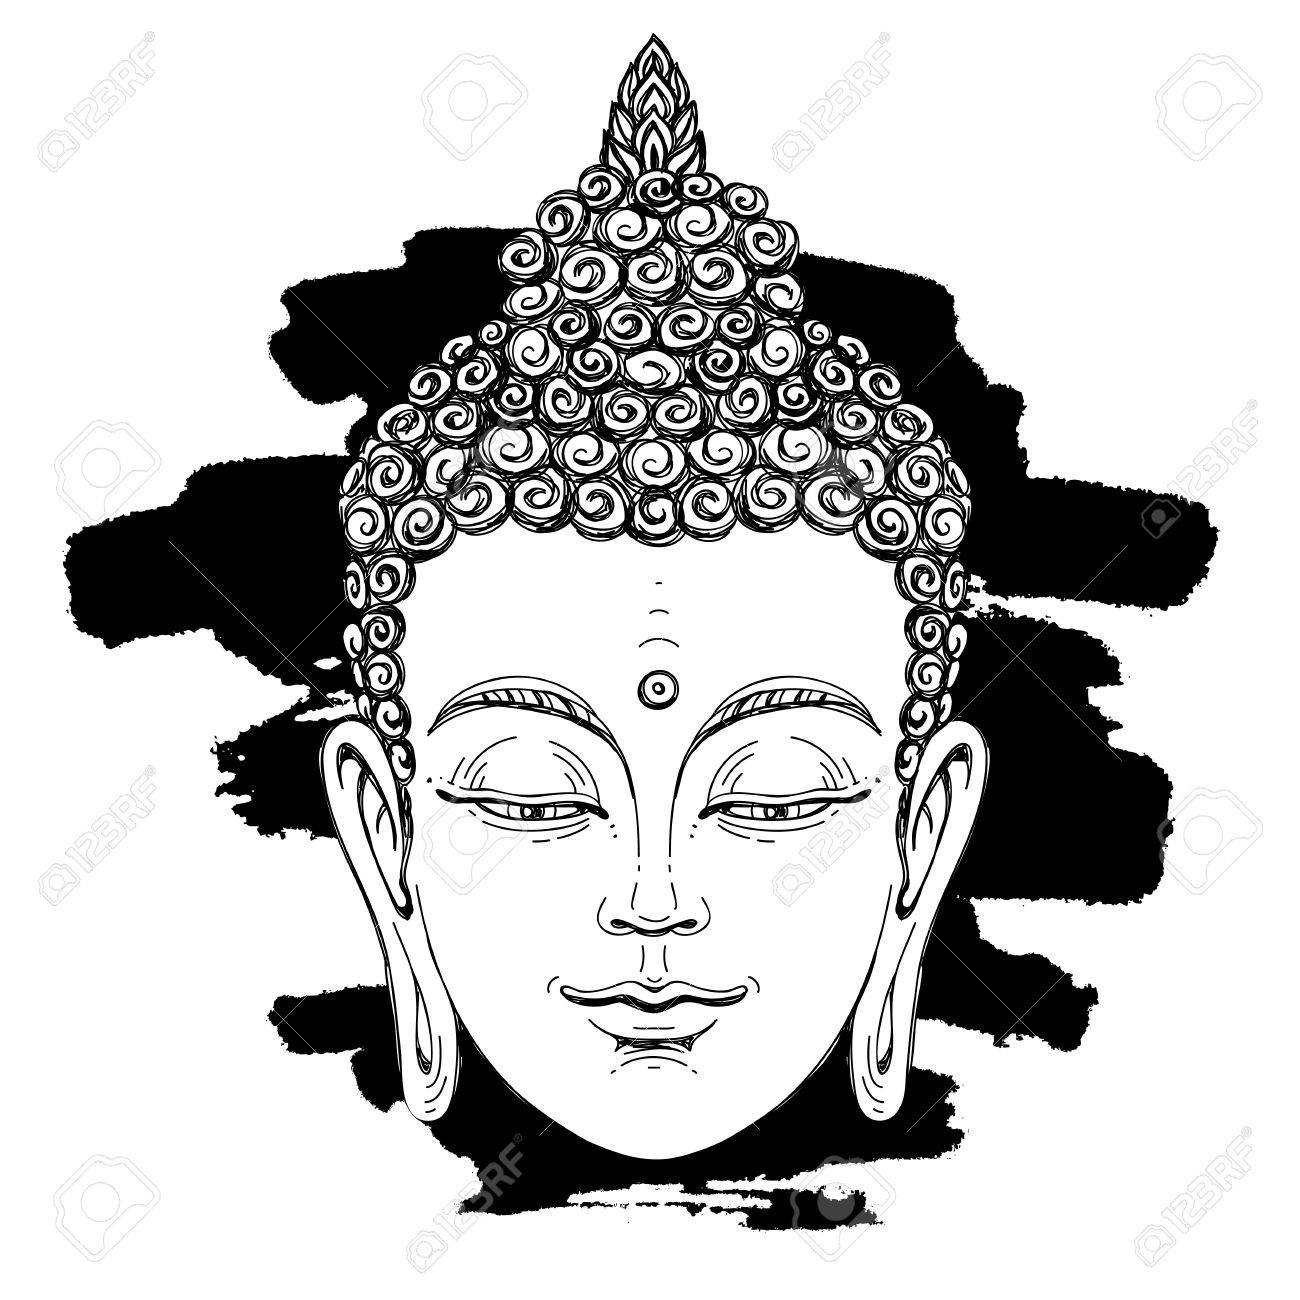 Portrait of a buddha vector illustration on white background with a smear of ink black